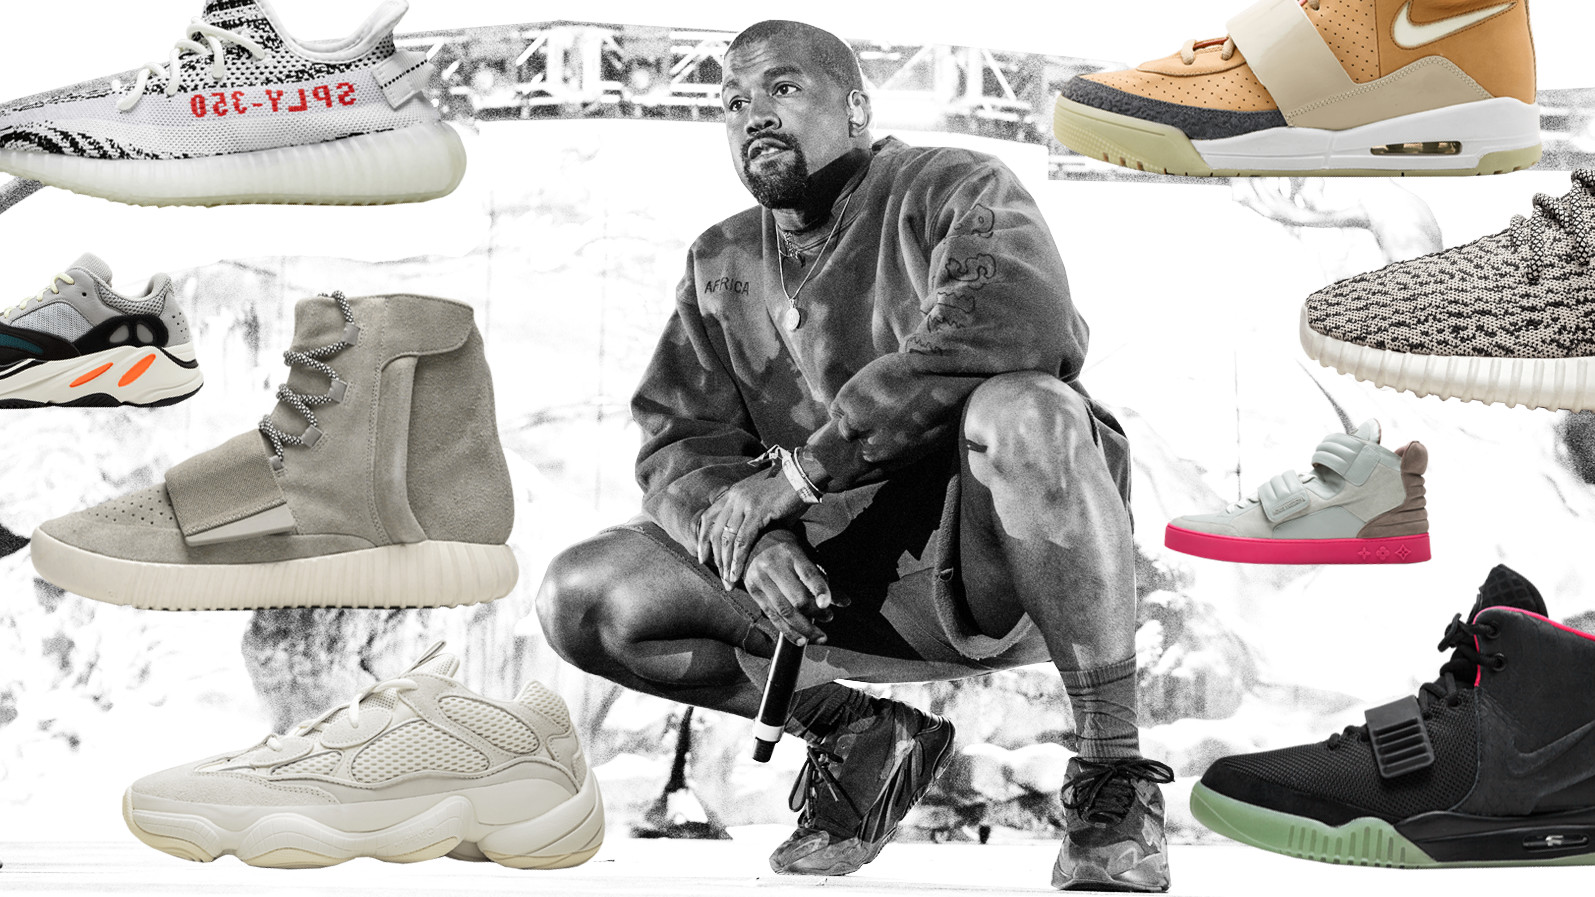 Ranking Kanye West's Sneakers, Worst to Best